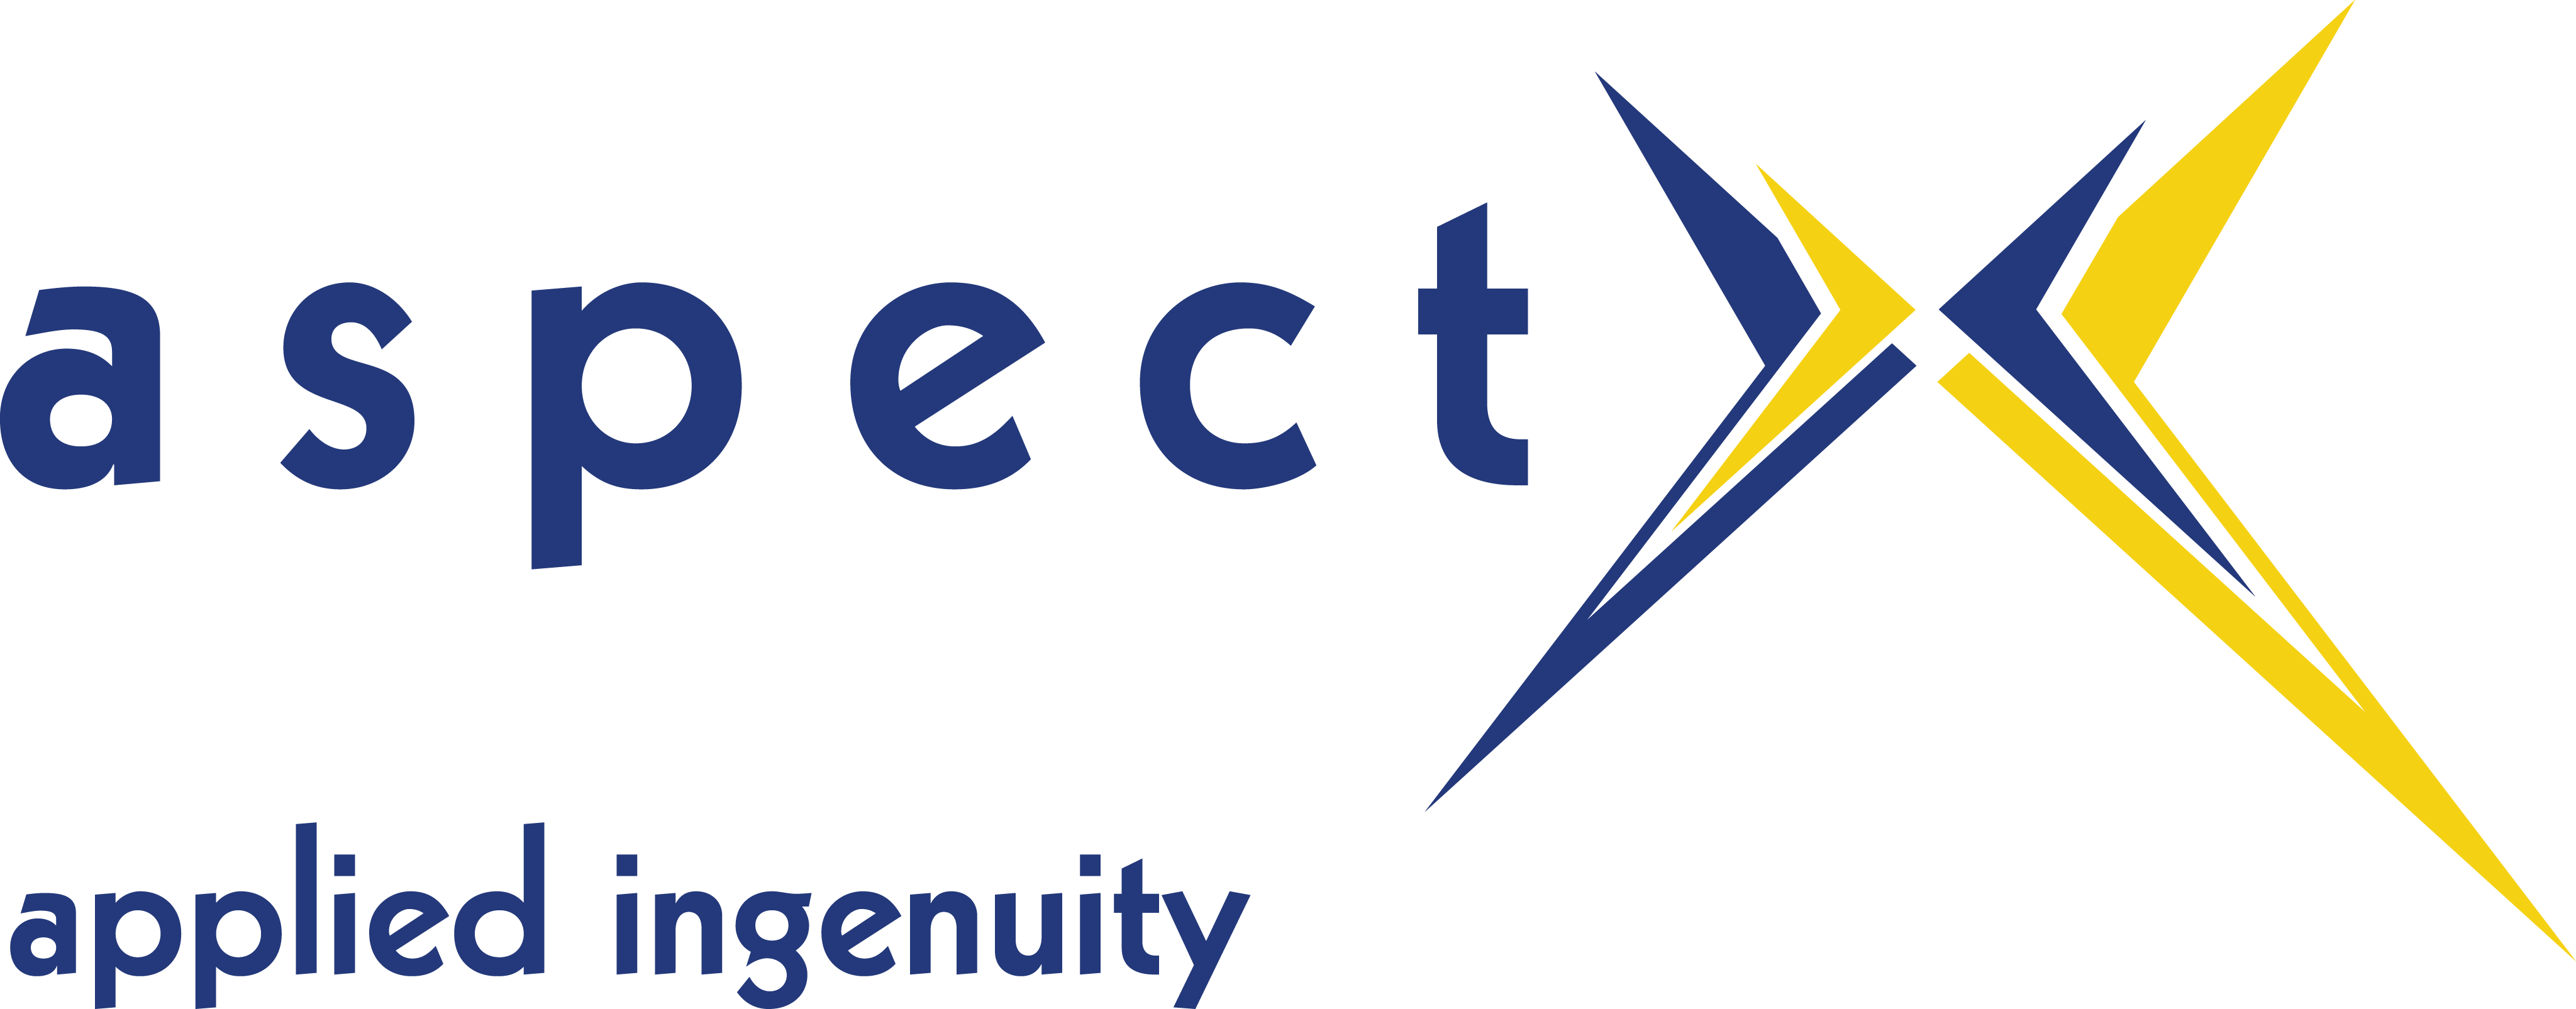 Aspectx logo, a full service agency providing key marketing and other strategies